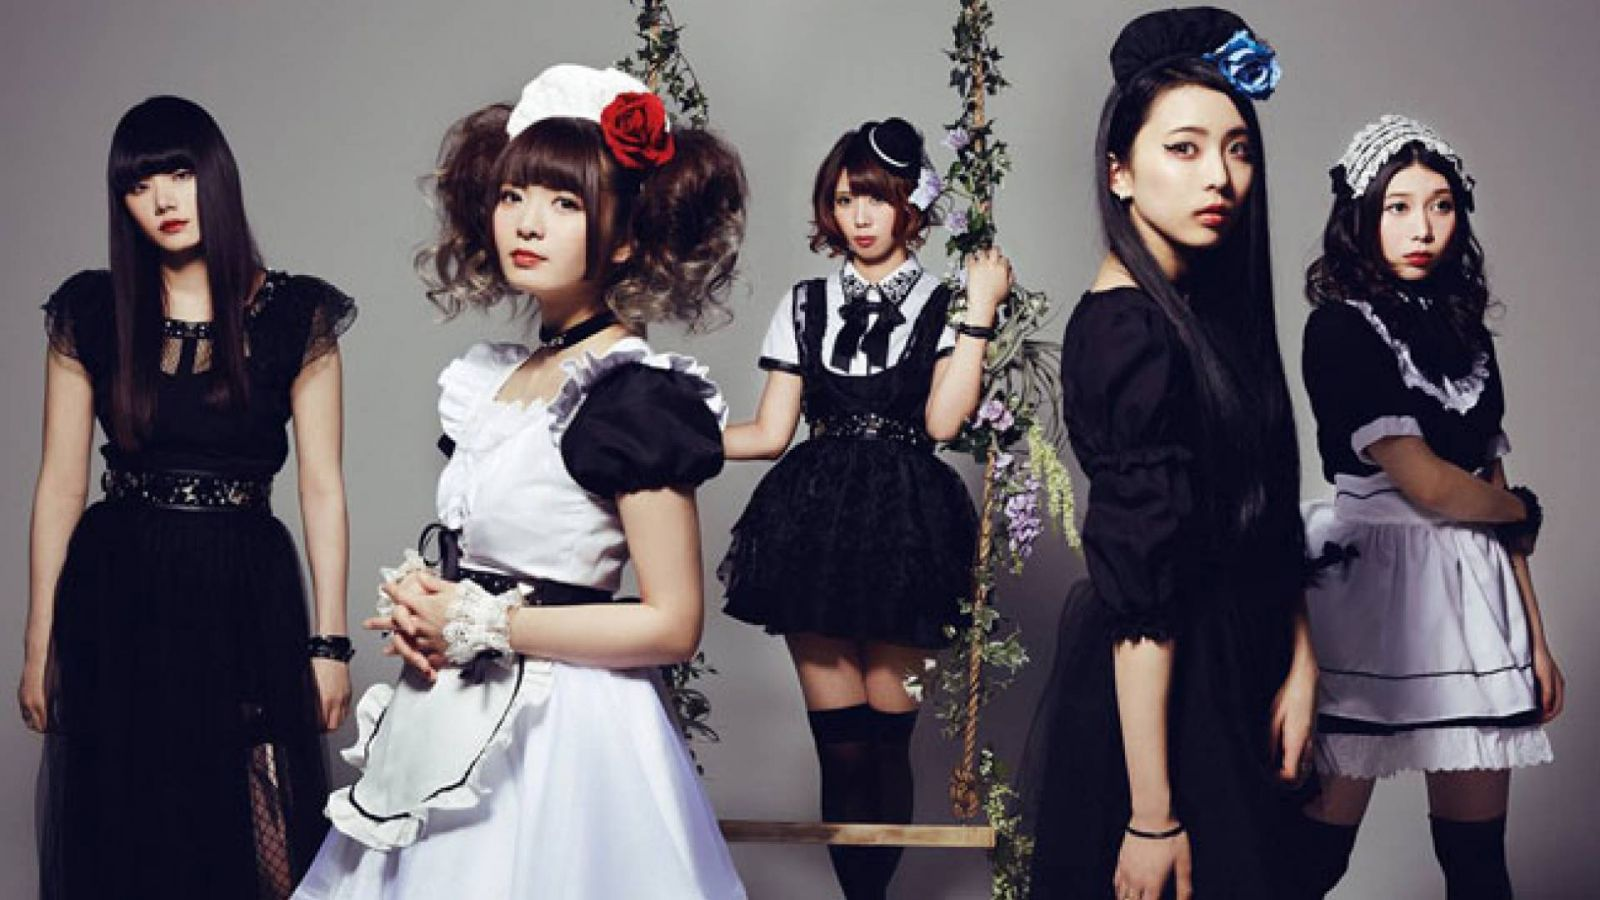 BAND-MAID Announces European Tour © PLATINUM PASSPORT. All rights reserved.